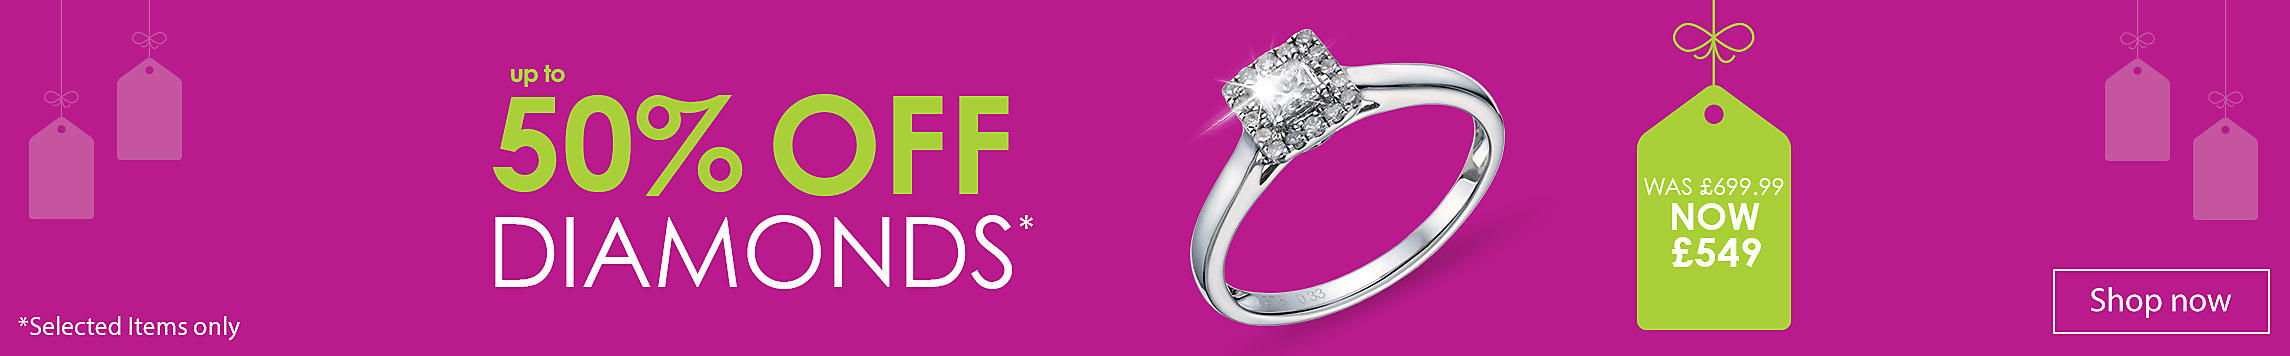 up to 50% off Diamonds